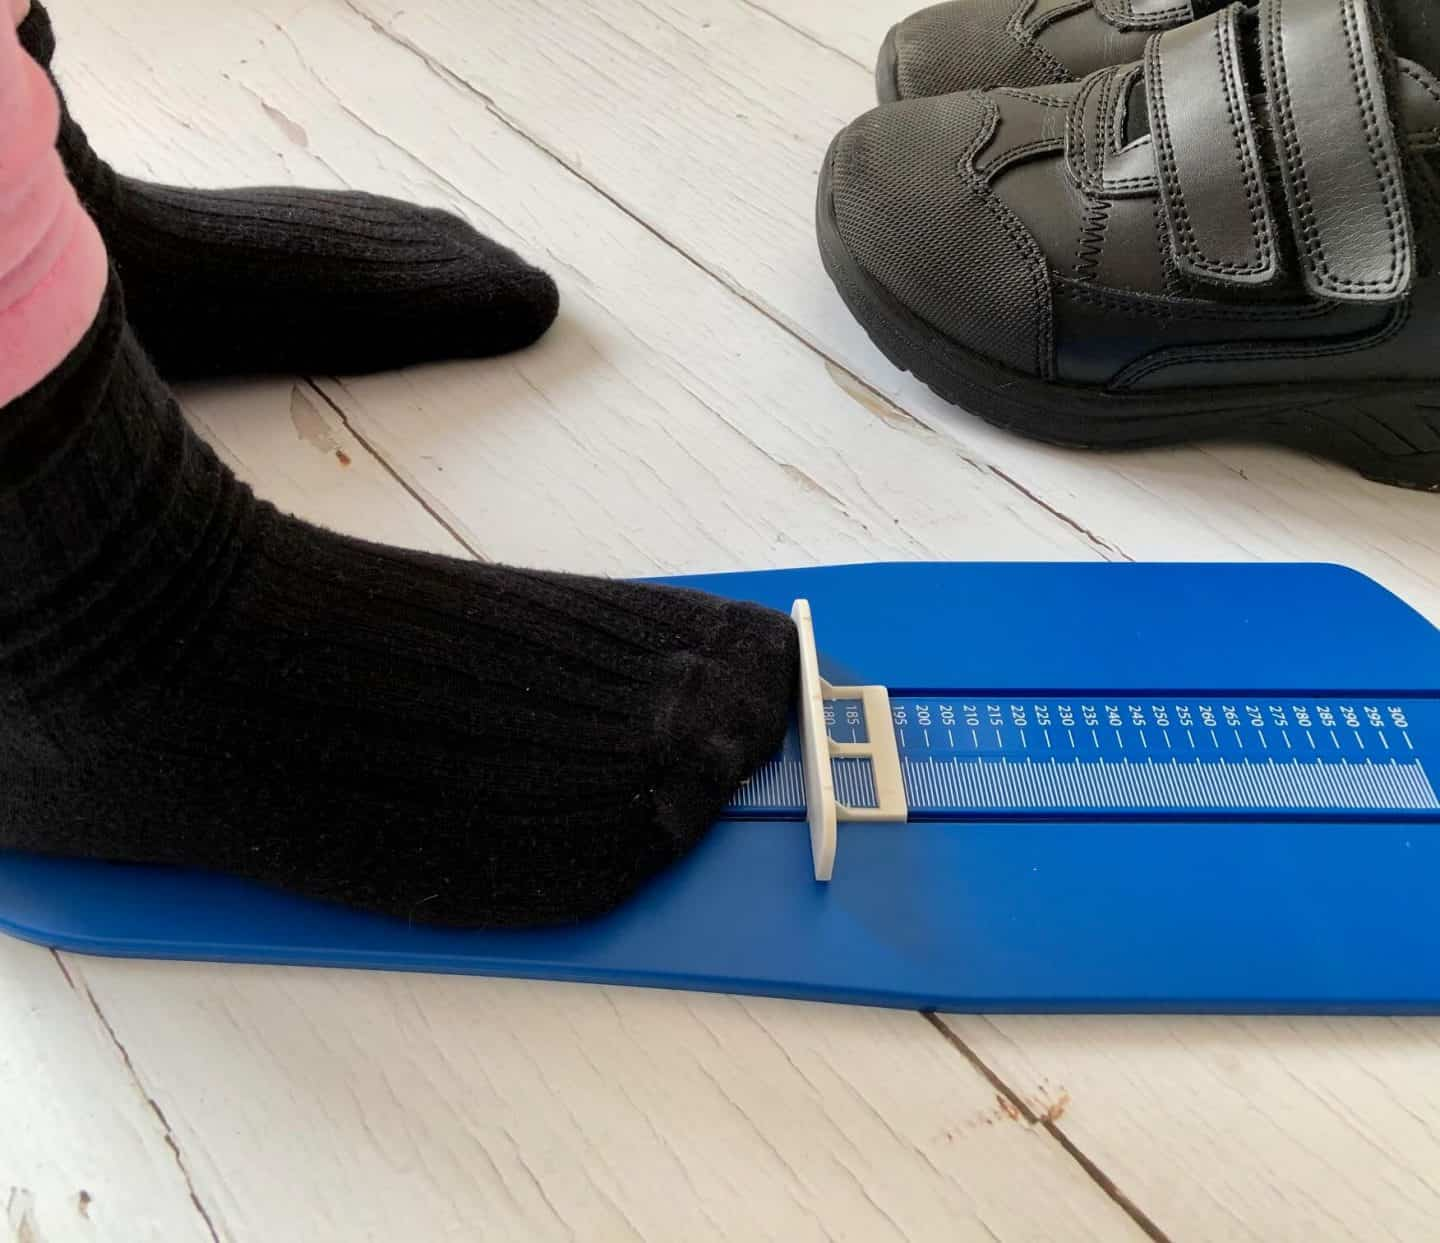 Measuring a Child's Shoe Size At Home